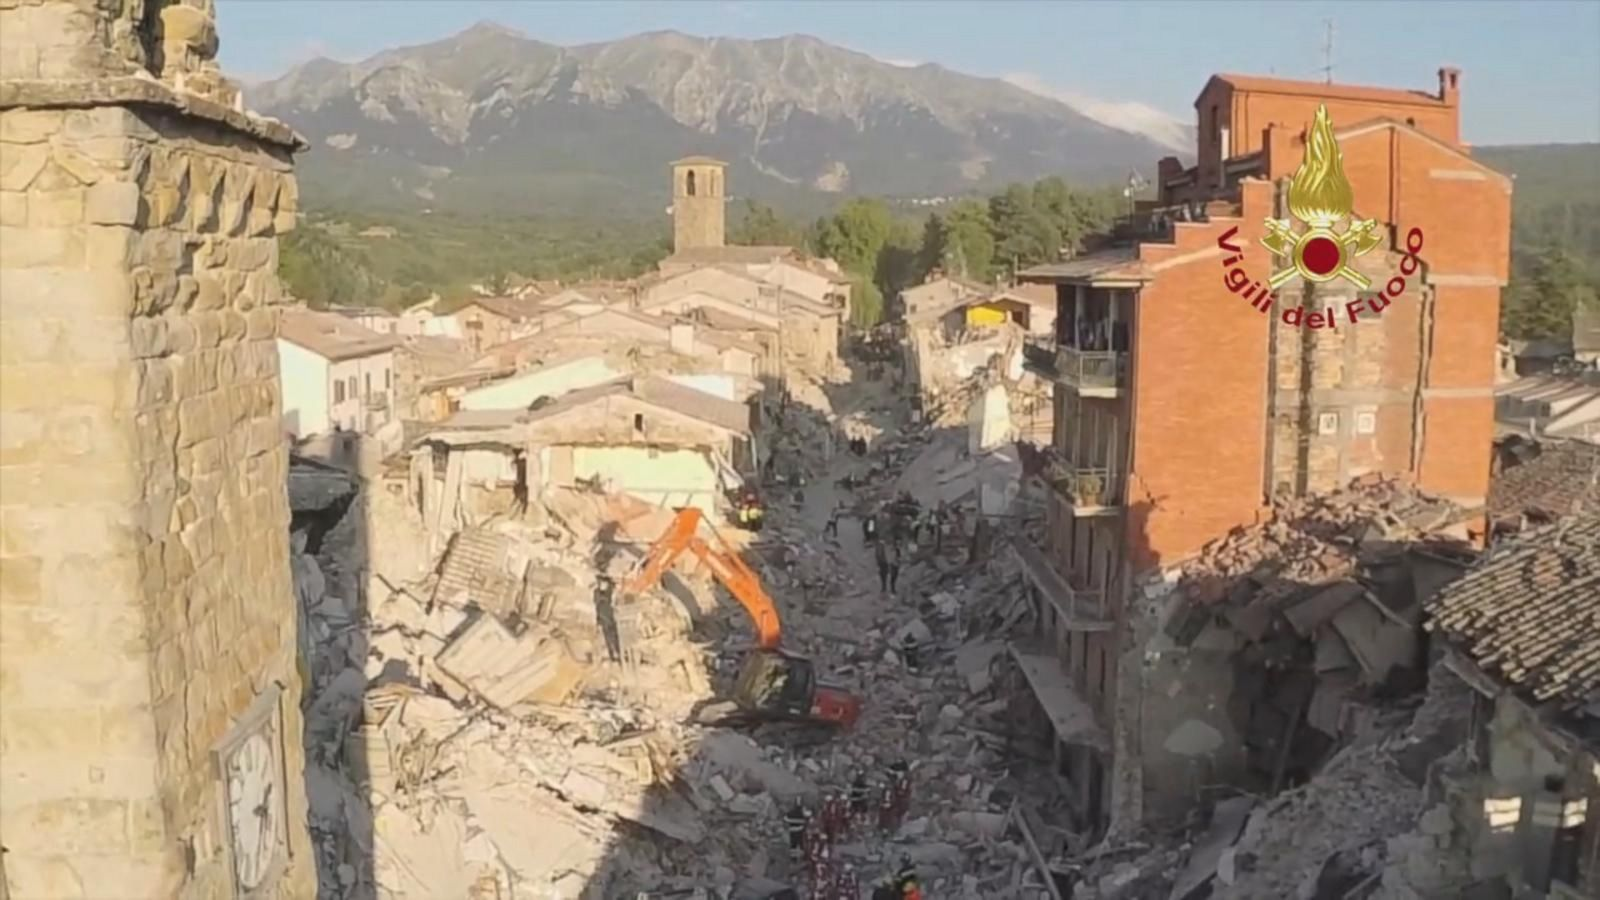 Aftershocks continued to rattle crews today as firefighters searched for survivors in the earthquake-hit town of Amatrice.